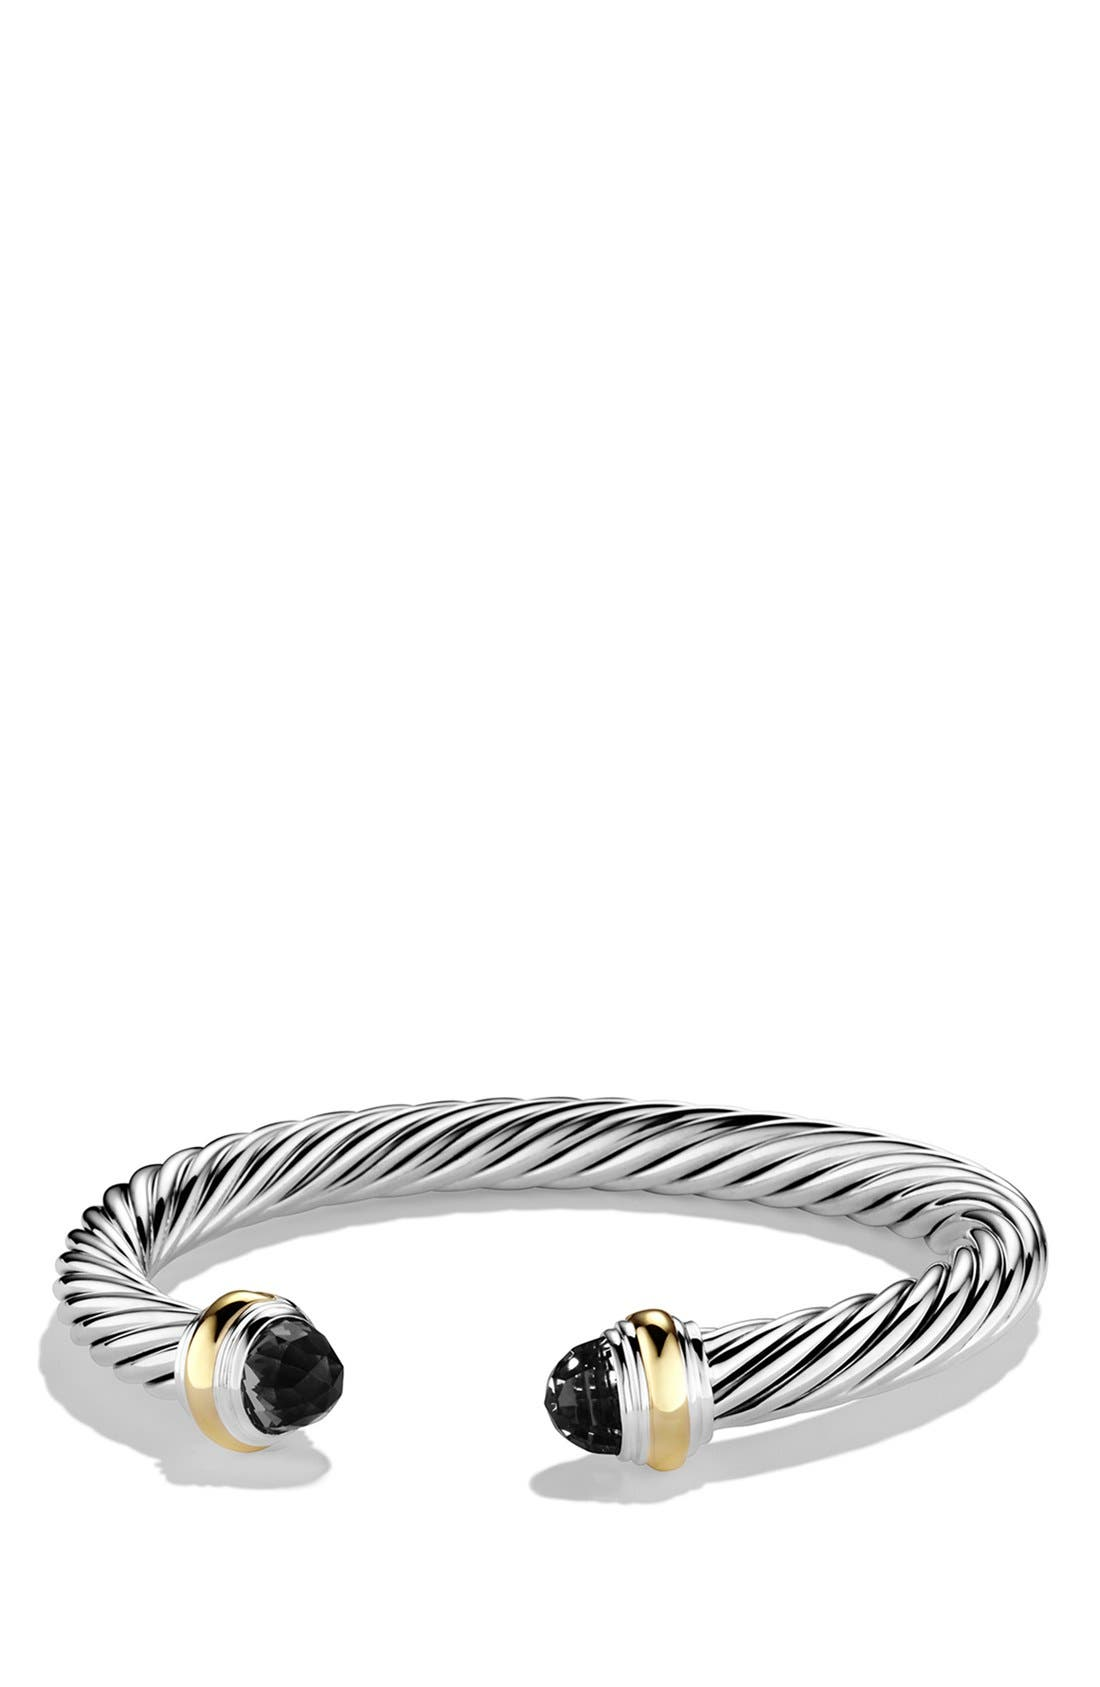 David Yurman Cable Classics Bracelet with Semiprecious Stones